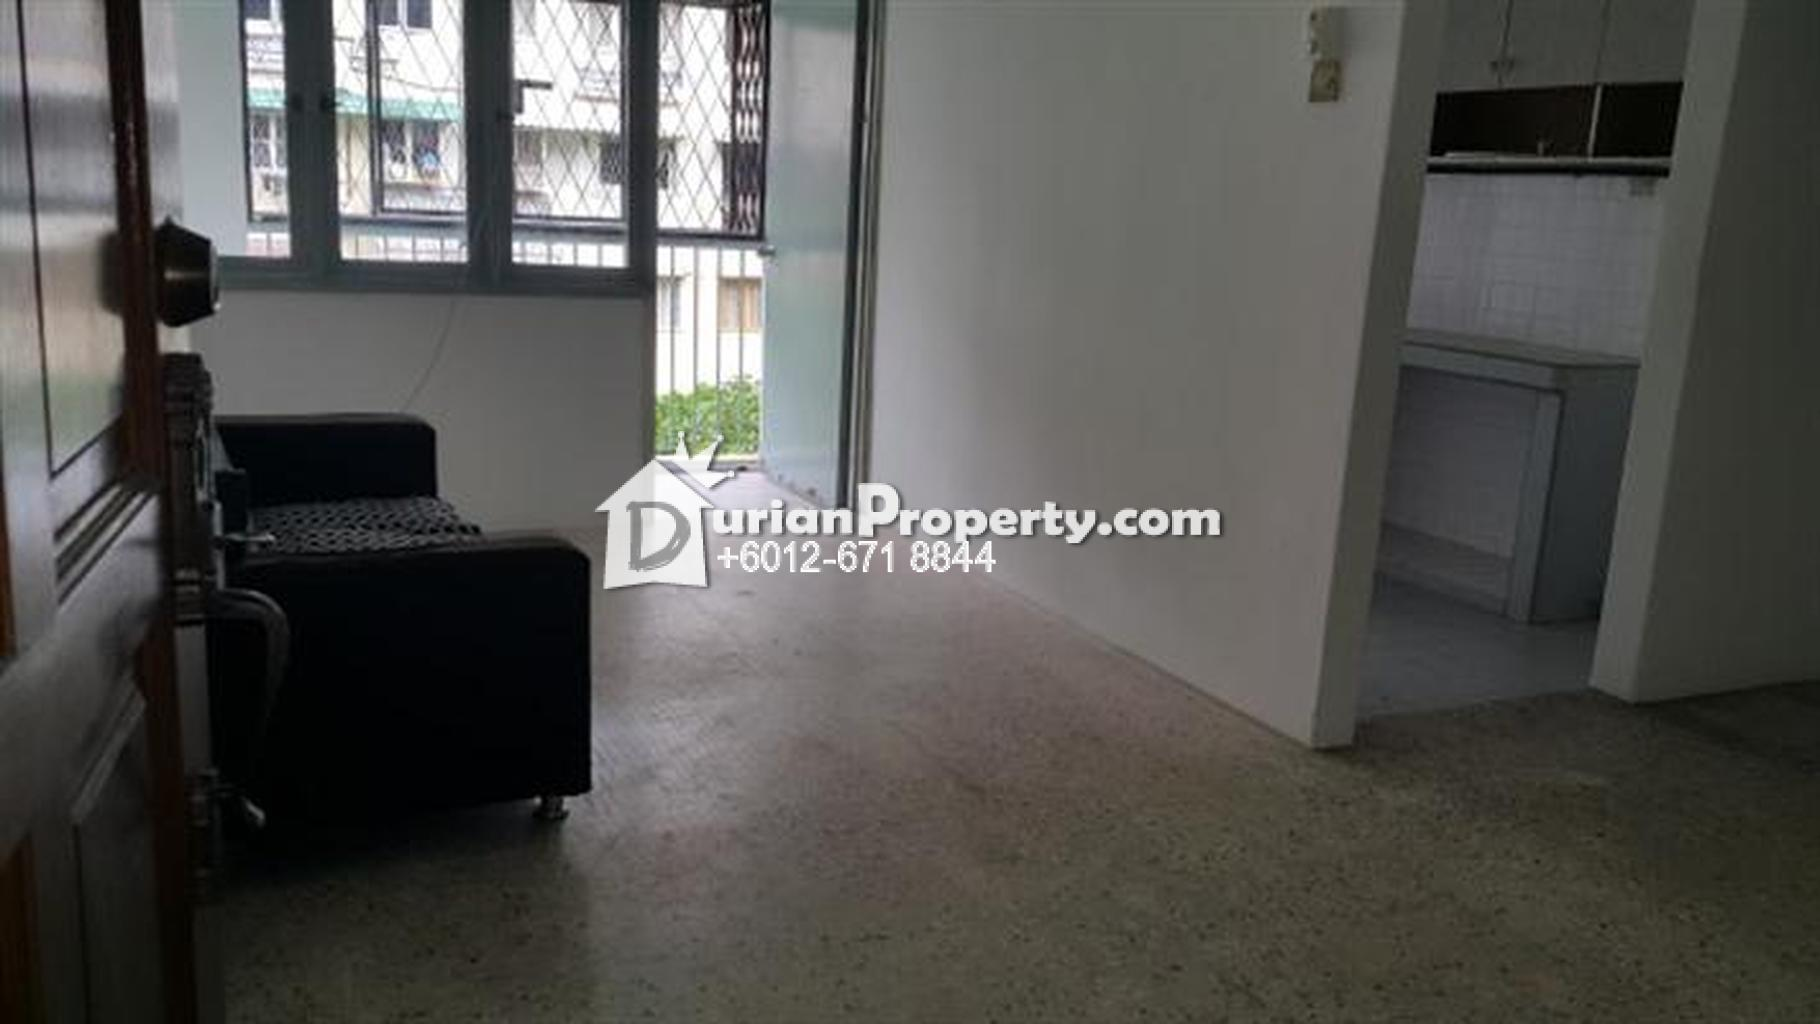 Apartment For Sale at Dahlia Apartment, Pandan Indah